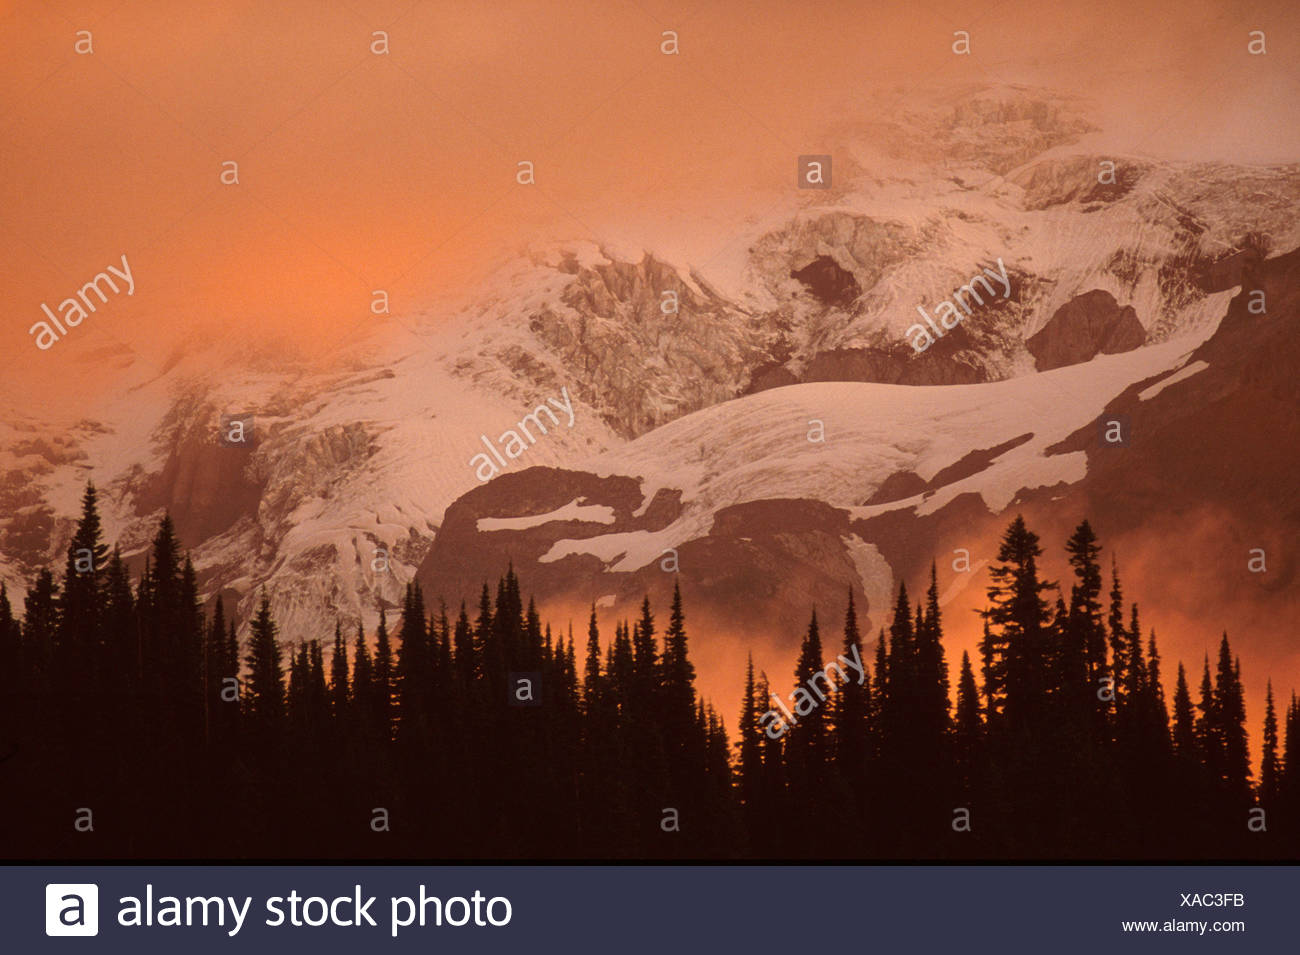 Pine trees towering above the sunset clouds with majestic Mt Rainier in the background Washington USA Stock Photo